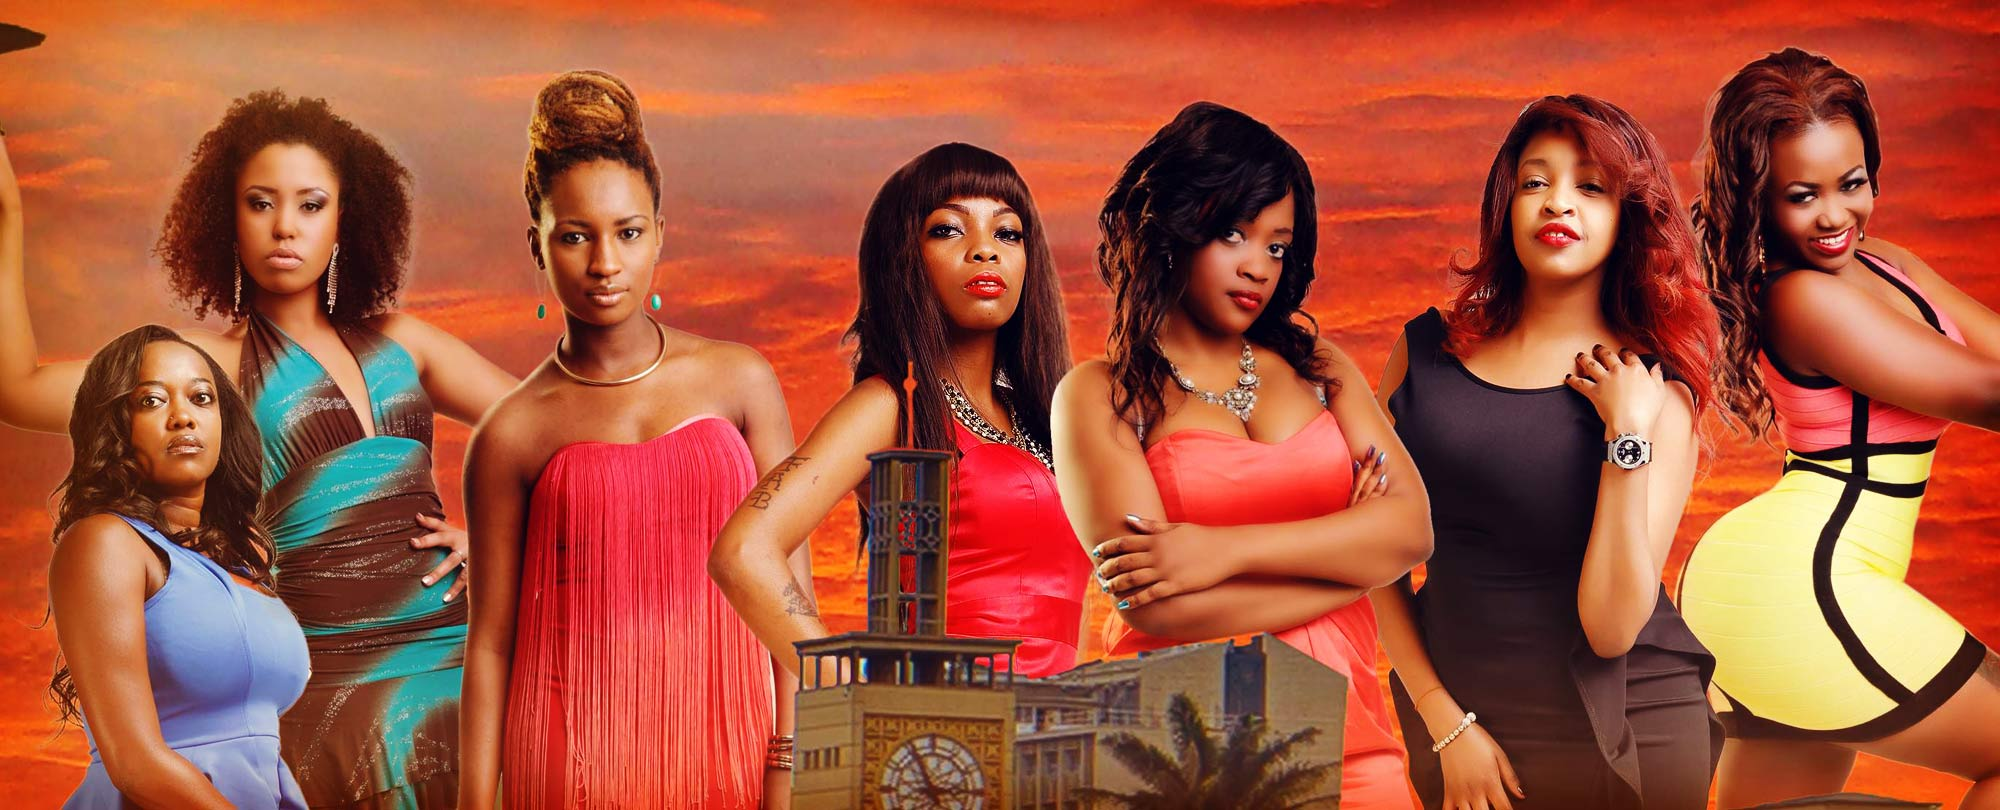 Nairobi Diaries Is Hot Controversial And Feminist True Africa